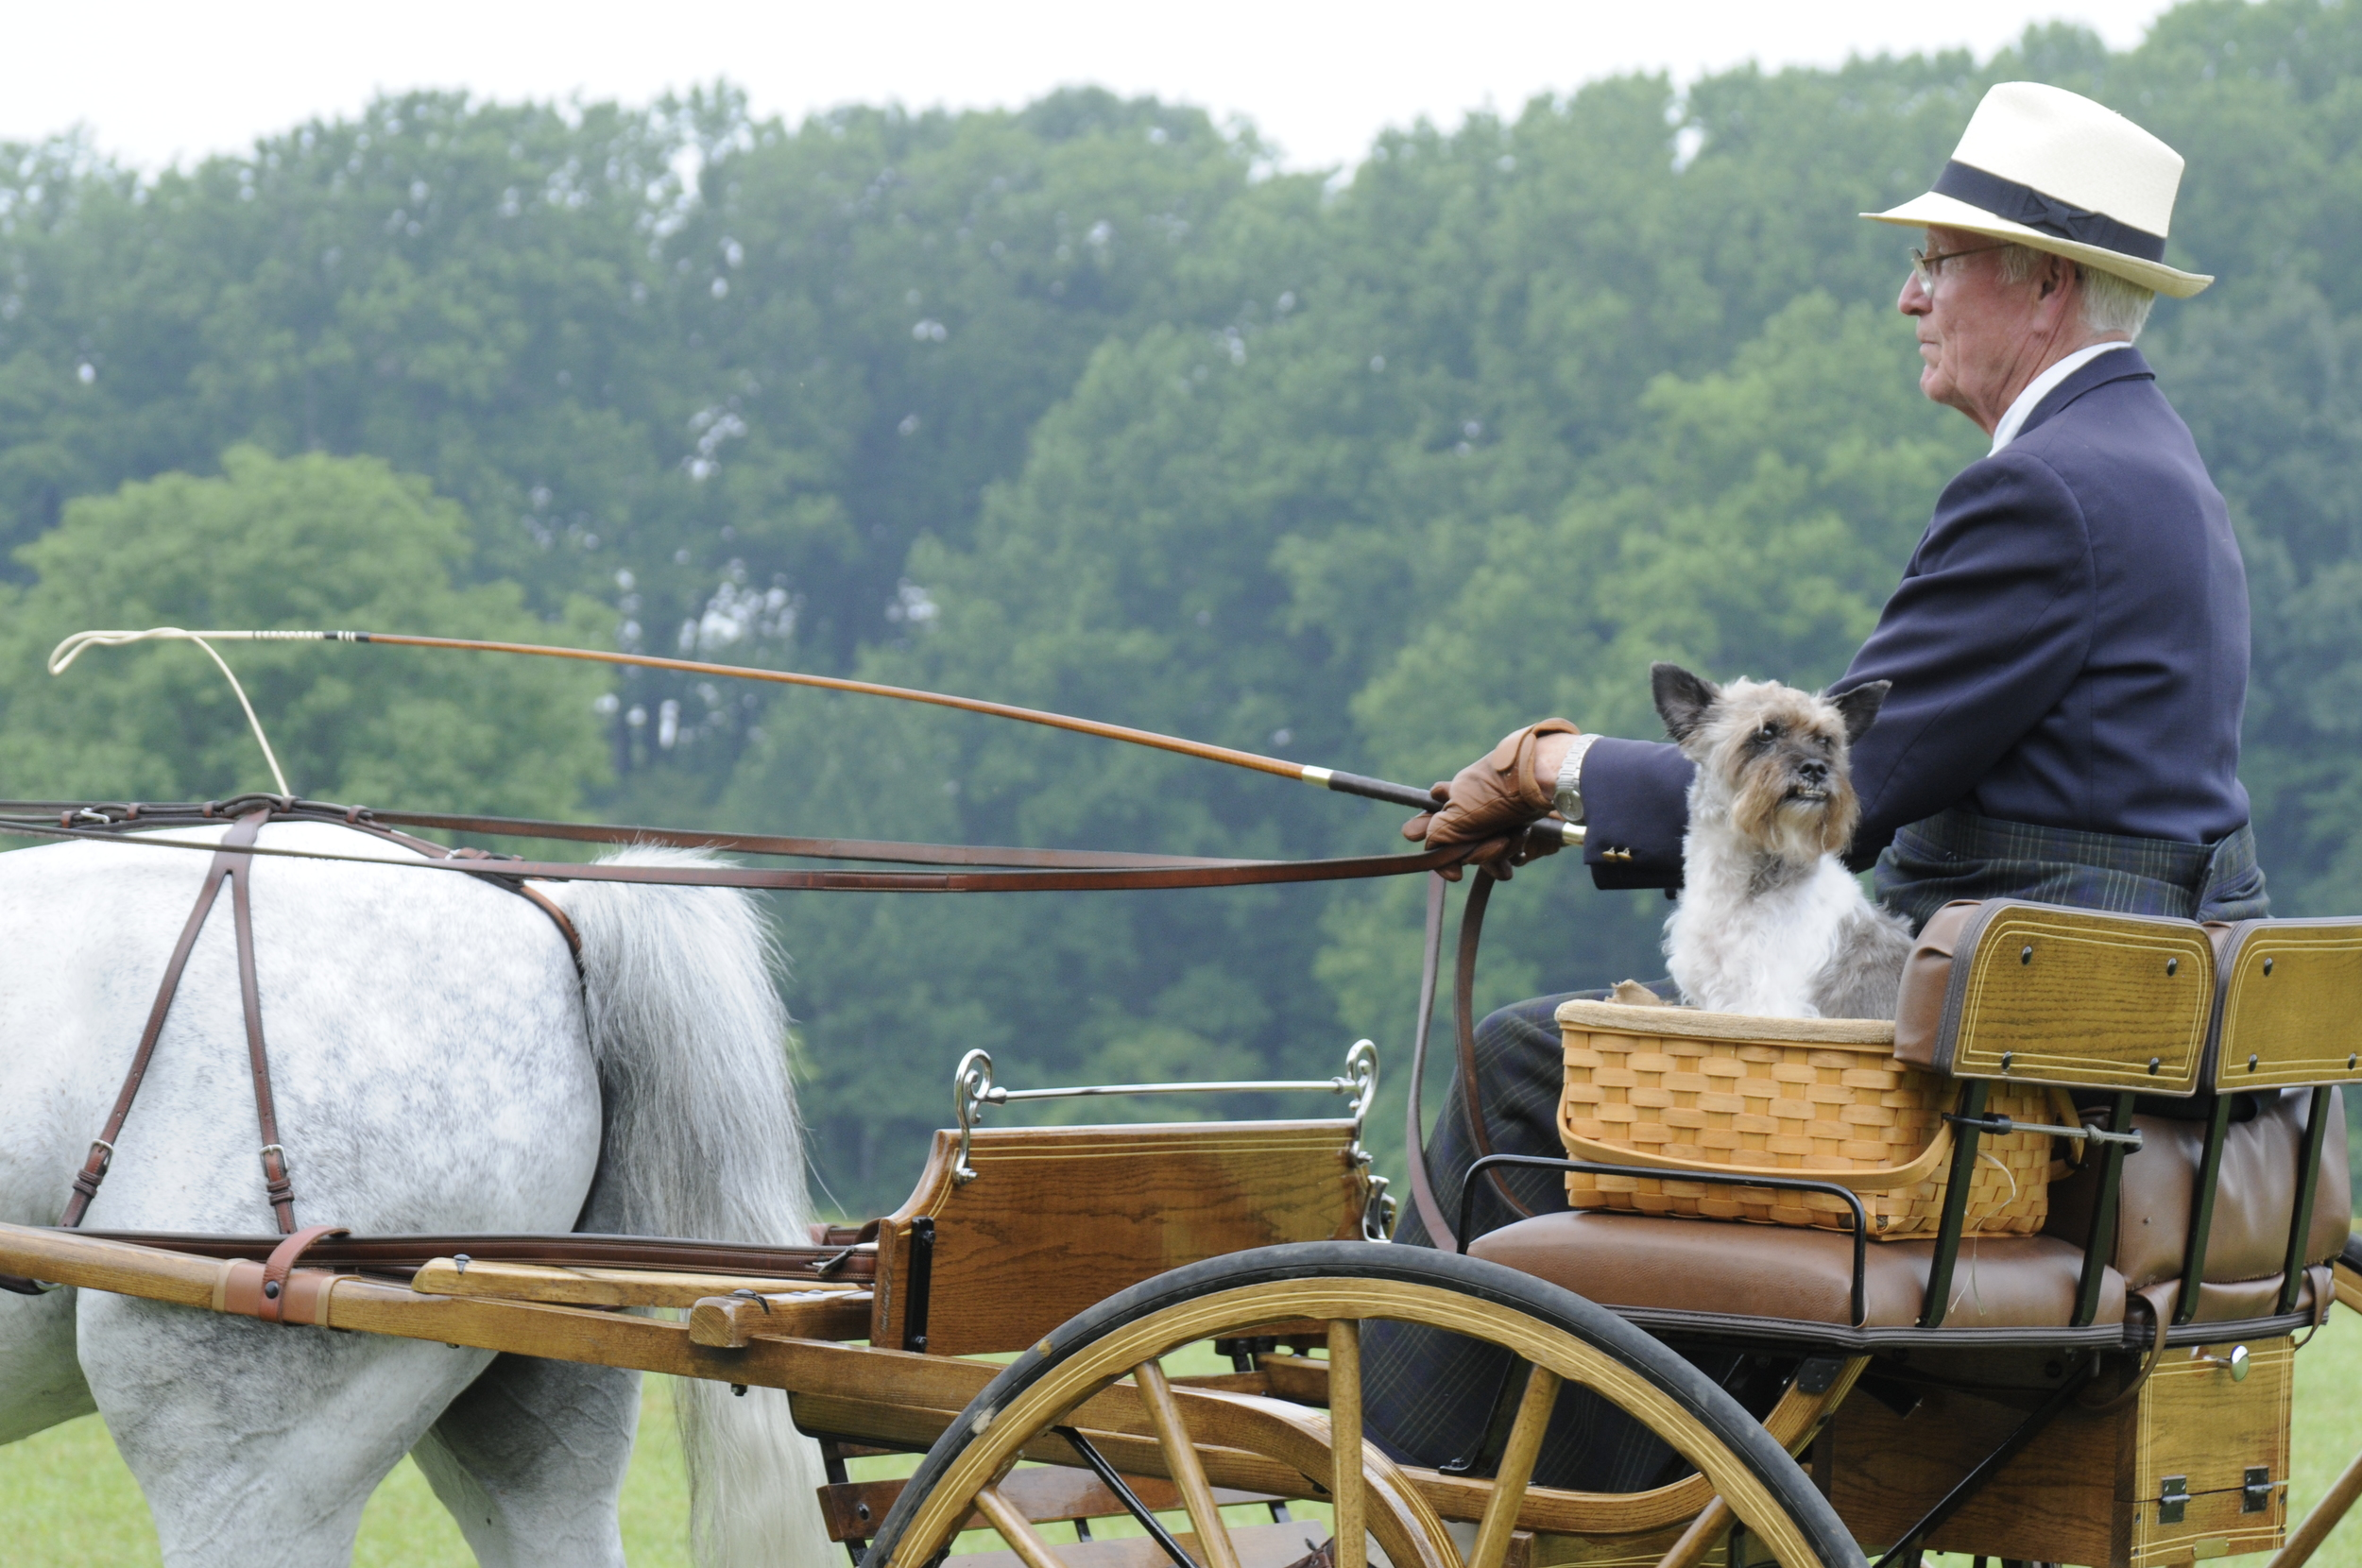 Event: Carriage dog competition